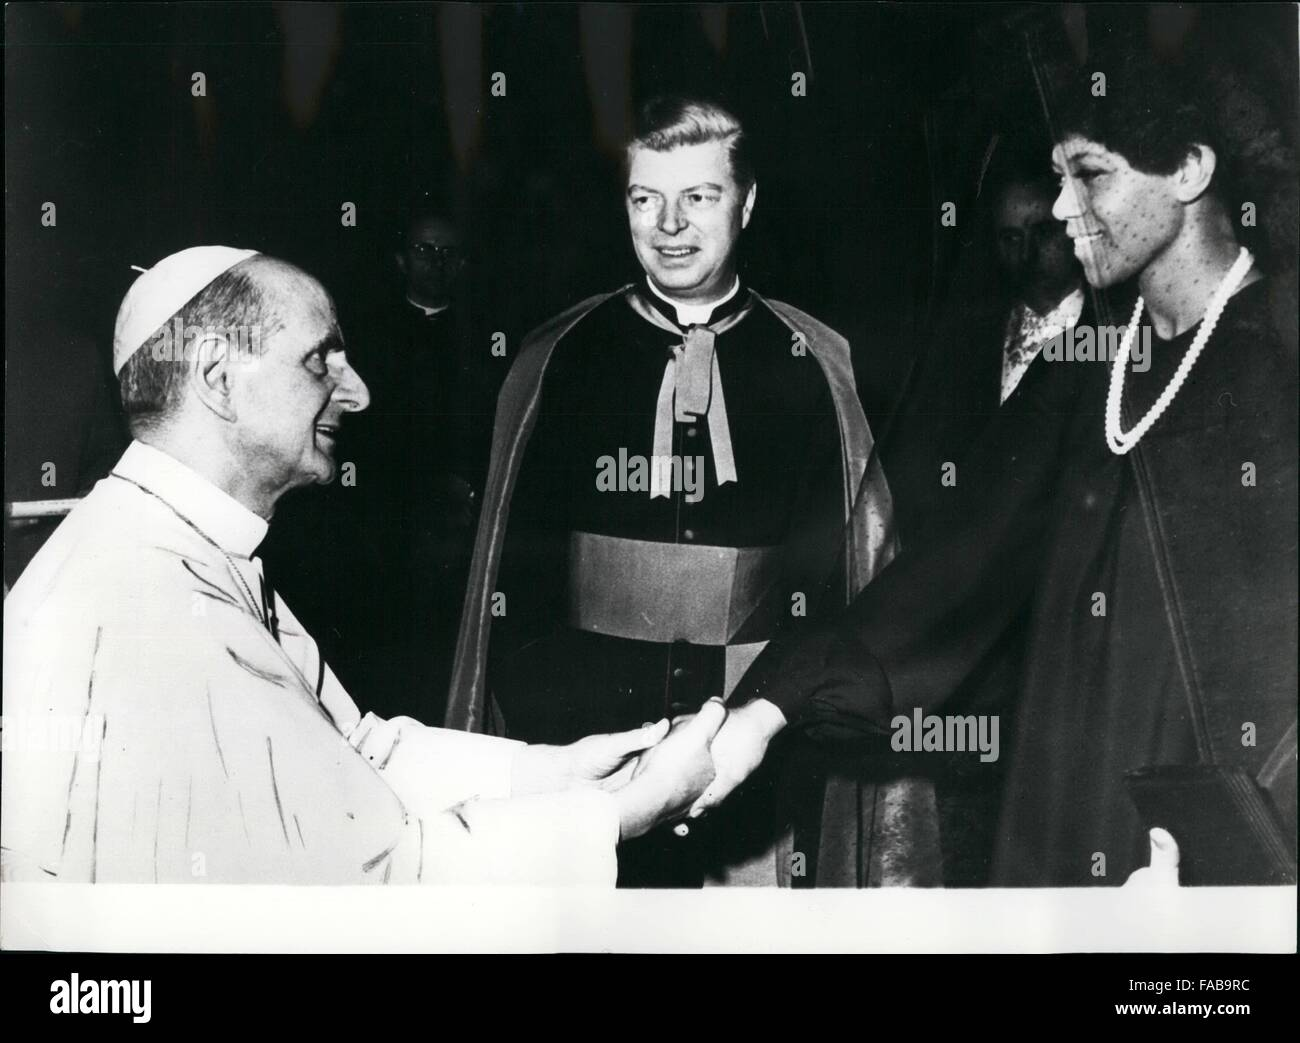 Wilma rudolph stock photos wilma rudolph stock images alamy 1964 former us olympic sprinter wilma rudolph who won three gold medals in rome voltagebd Choice Image